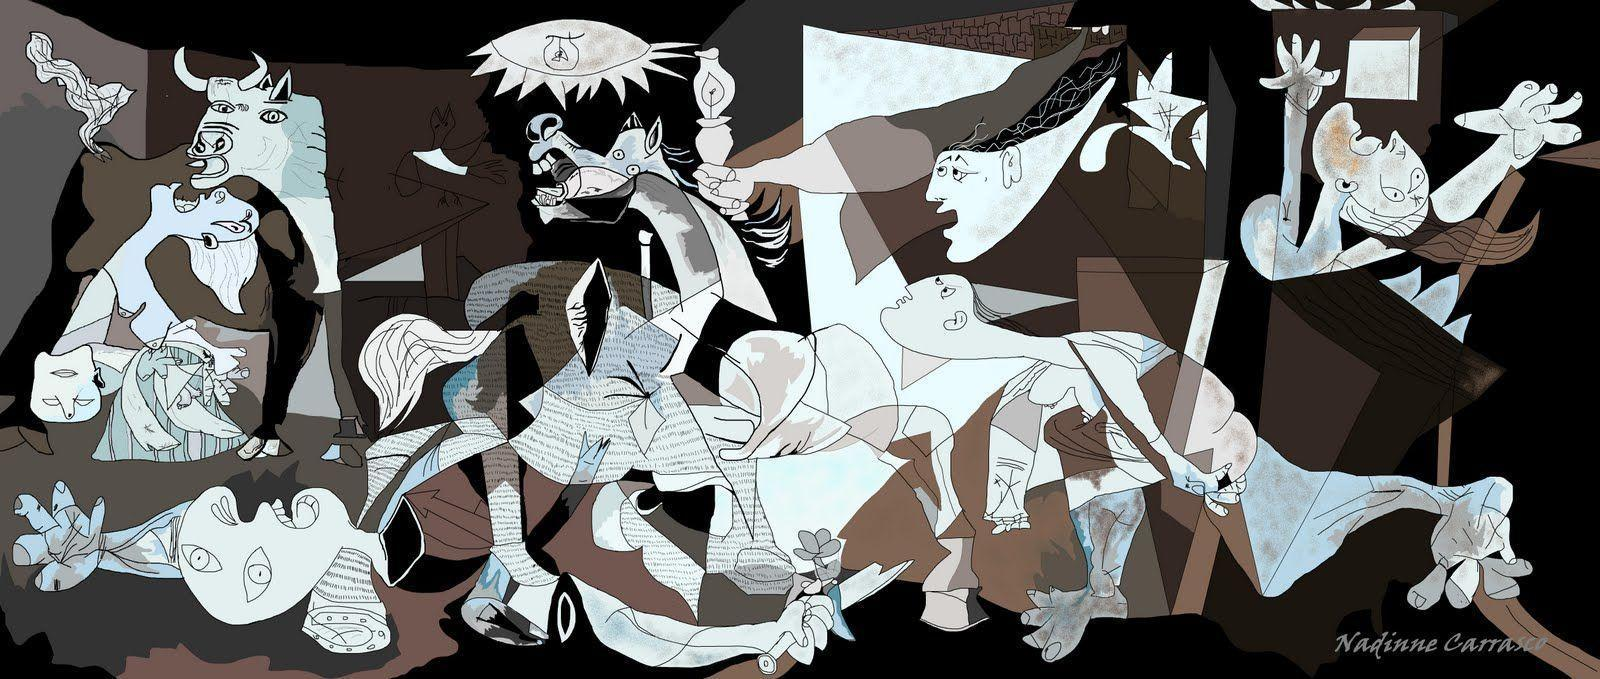 Guernica wallpapers wallpaper cave for Mural guernica